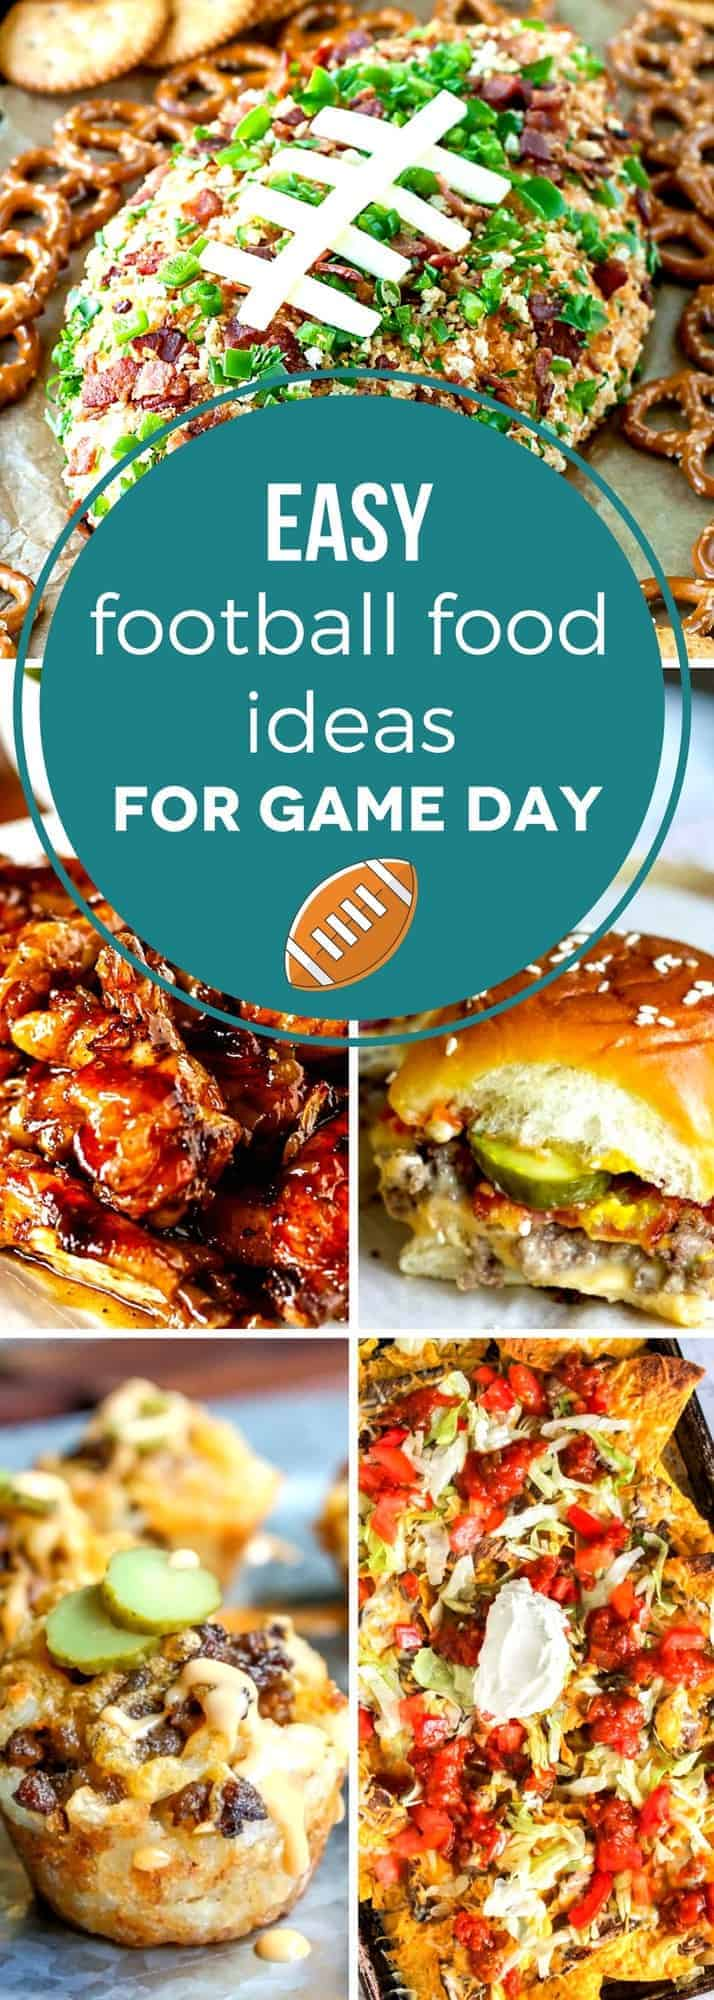 Get game day ready with these easy football food ideas for game day! Don't spend all your time in the kitchen and miss the big game. With over 30 deliciously easy recipes, you're guaranteed to find the perfect football appetizers for your party, big or small! #SundaySupper #tailgating #footballfood #gamedayfood #fingerfood